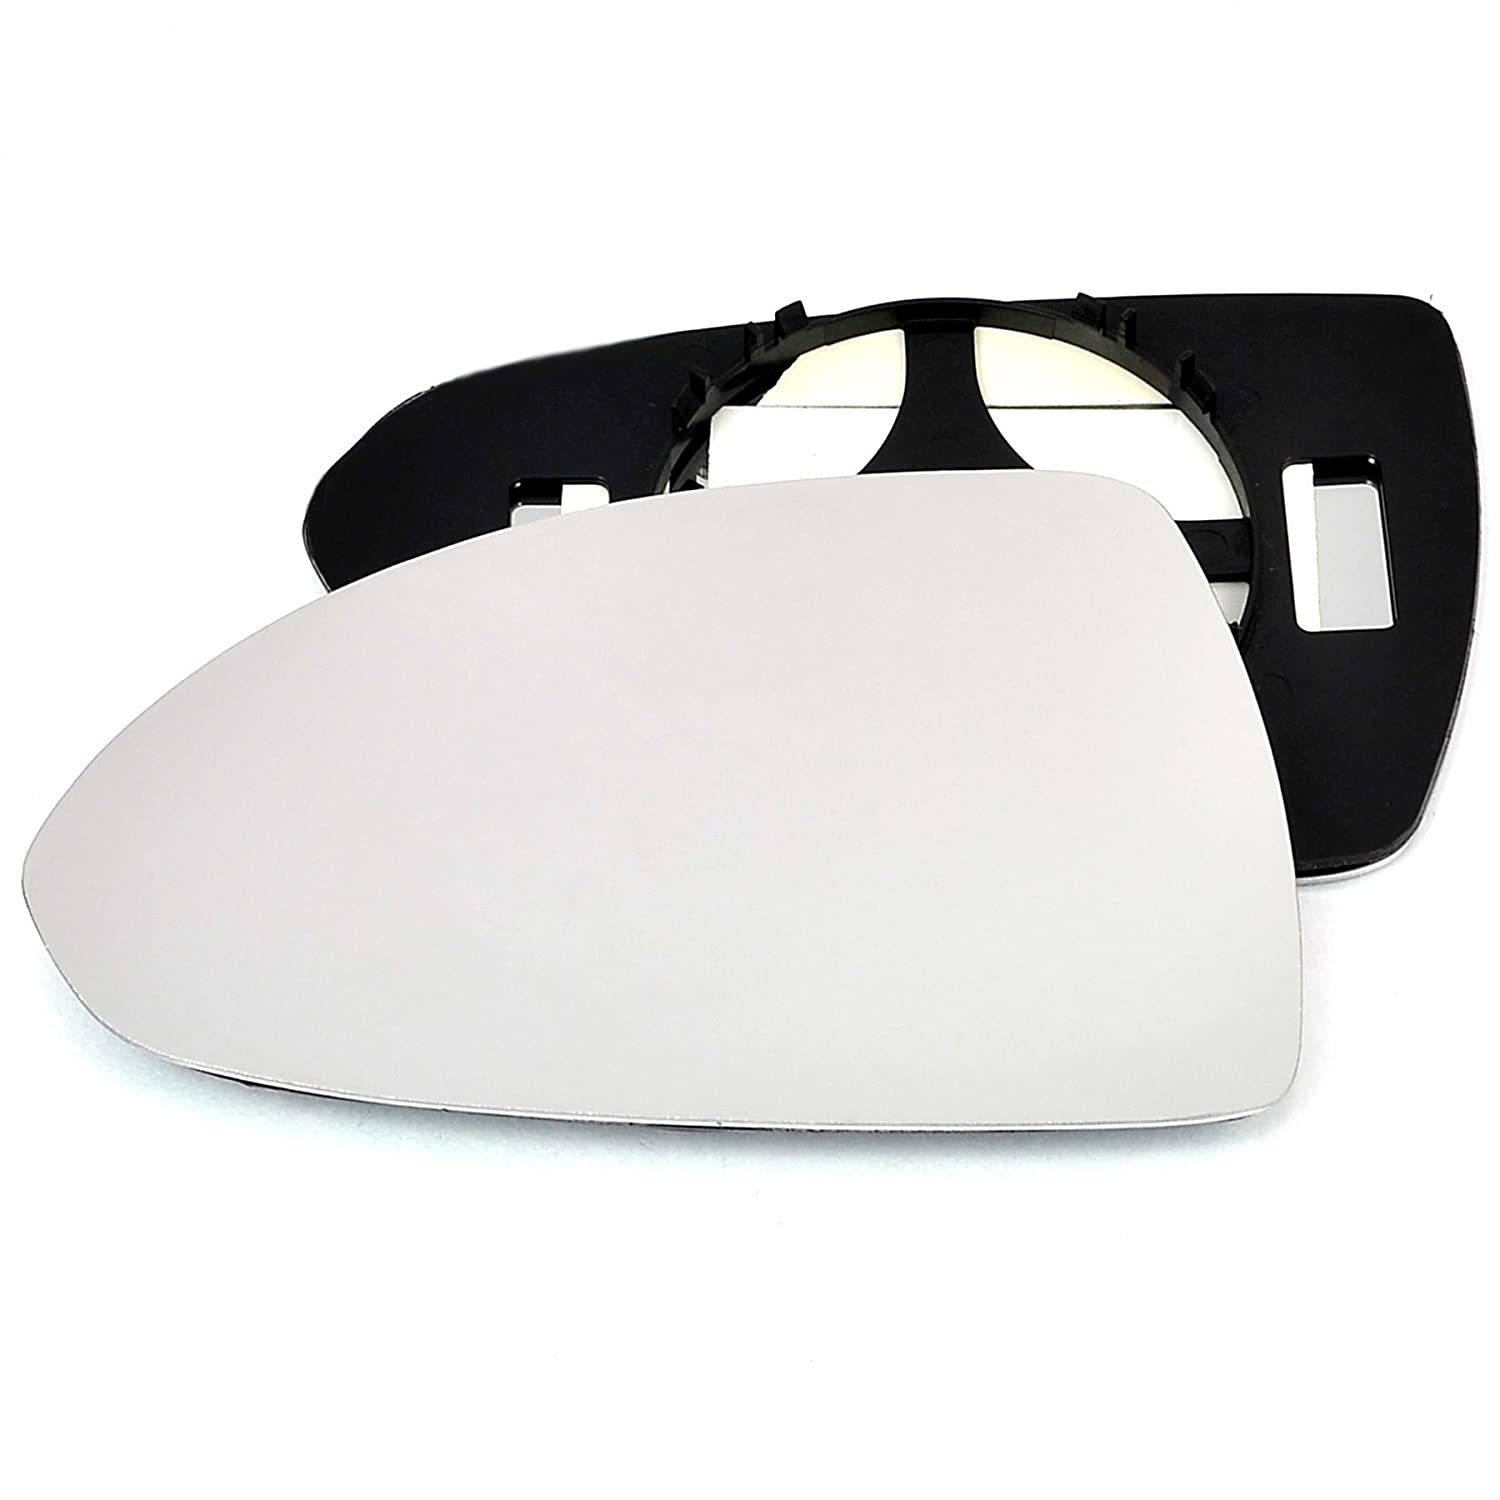 Passenger left hand side wing door Silver mirror glass with backing plate #C-SN/L-OLCAE14 [Clip On] Sylgab